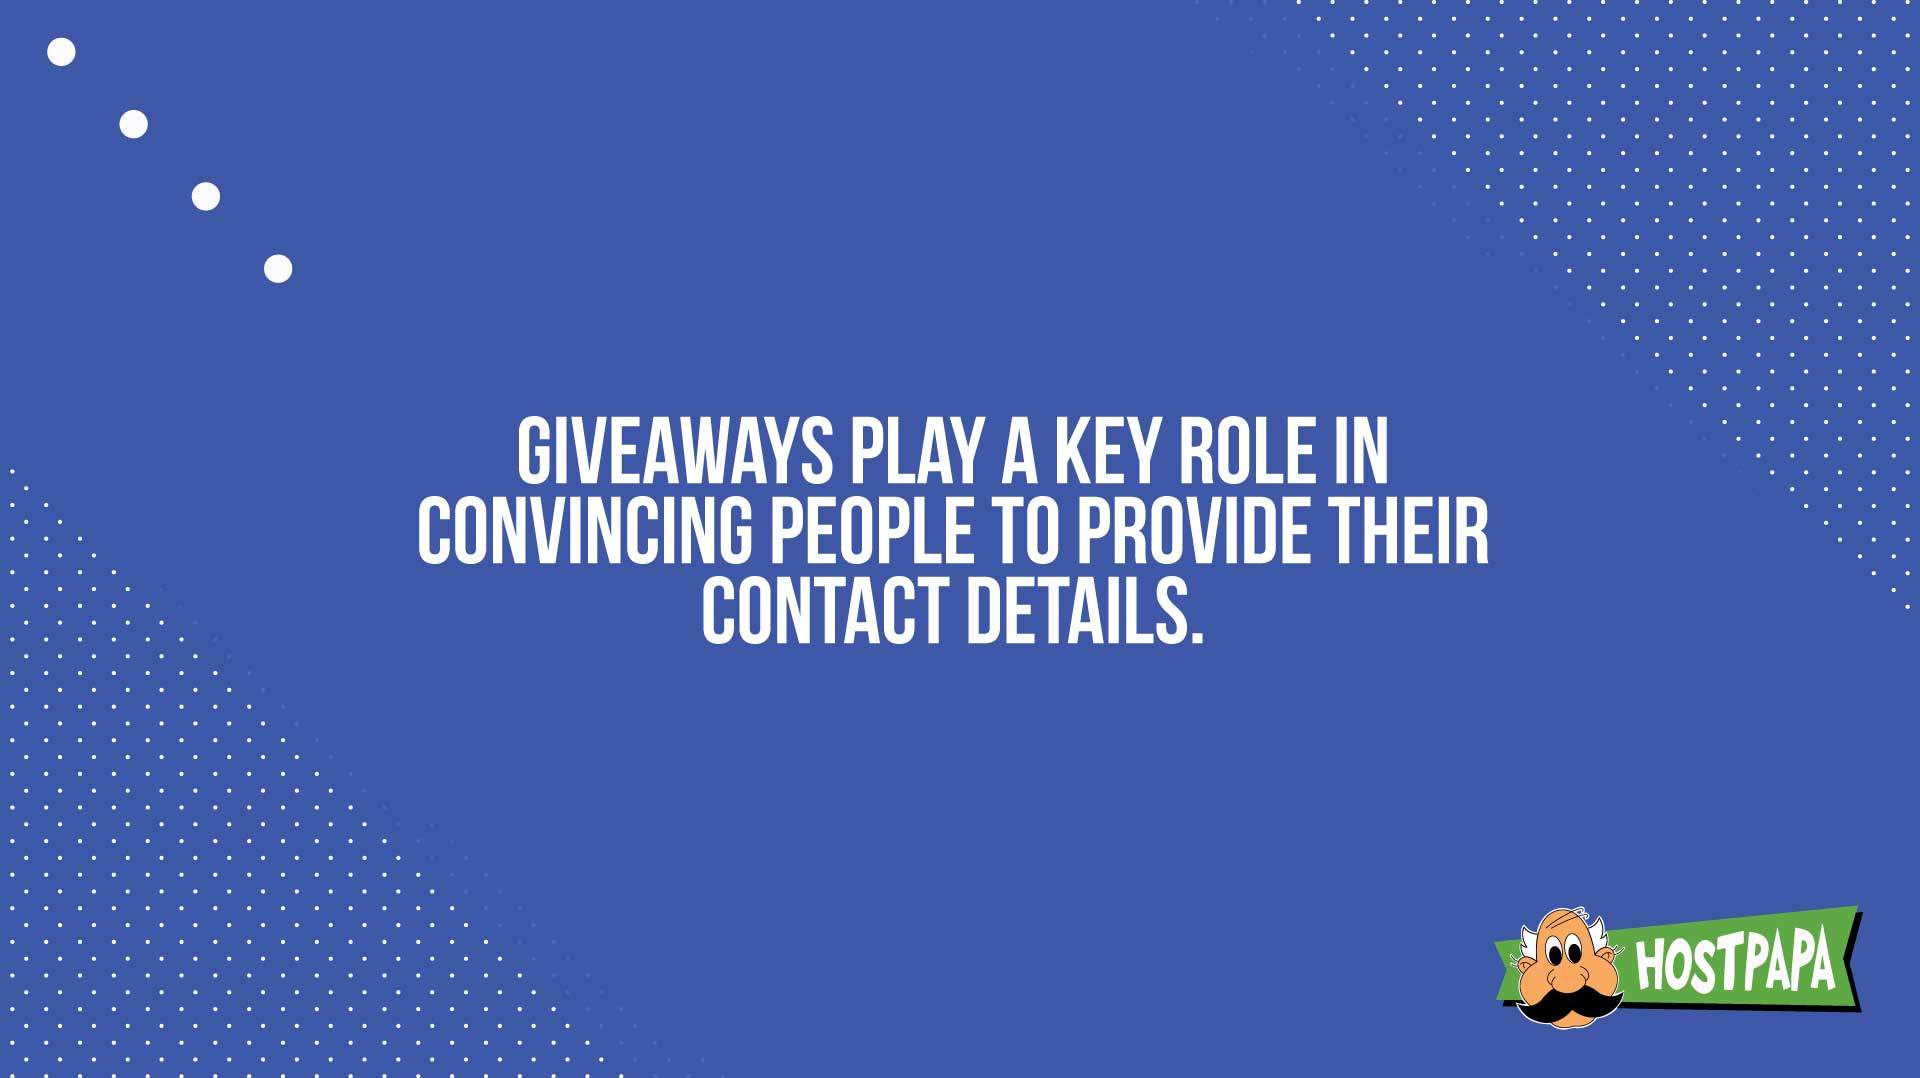 Giveaways play a key role in convincing people to provide their contact details